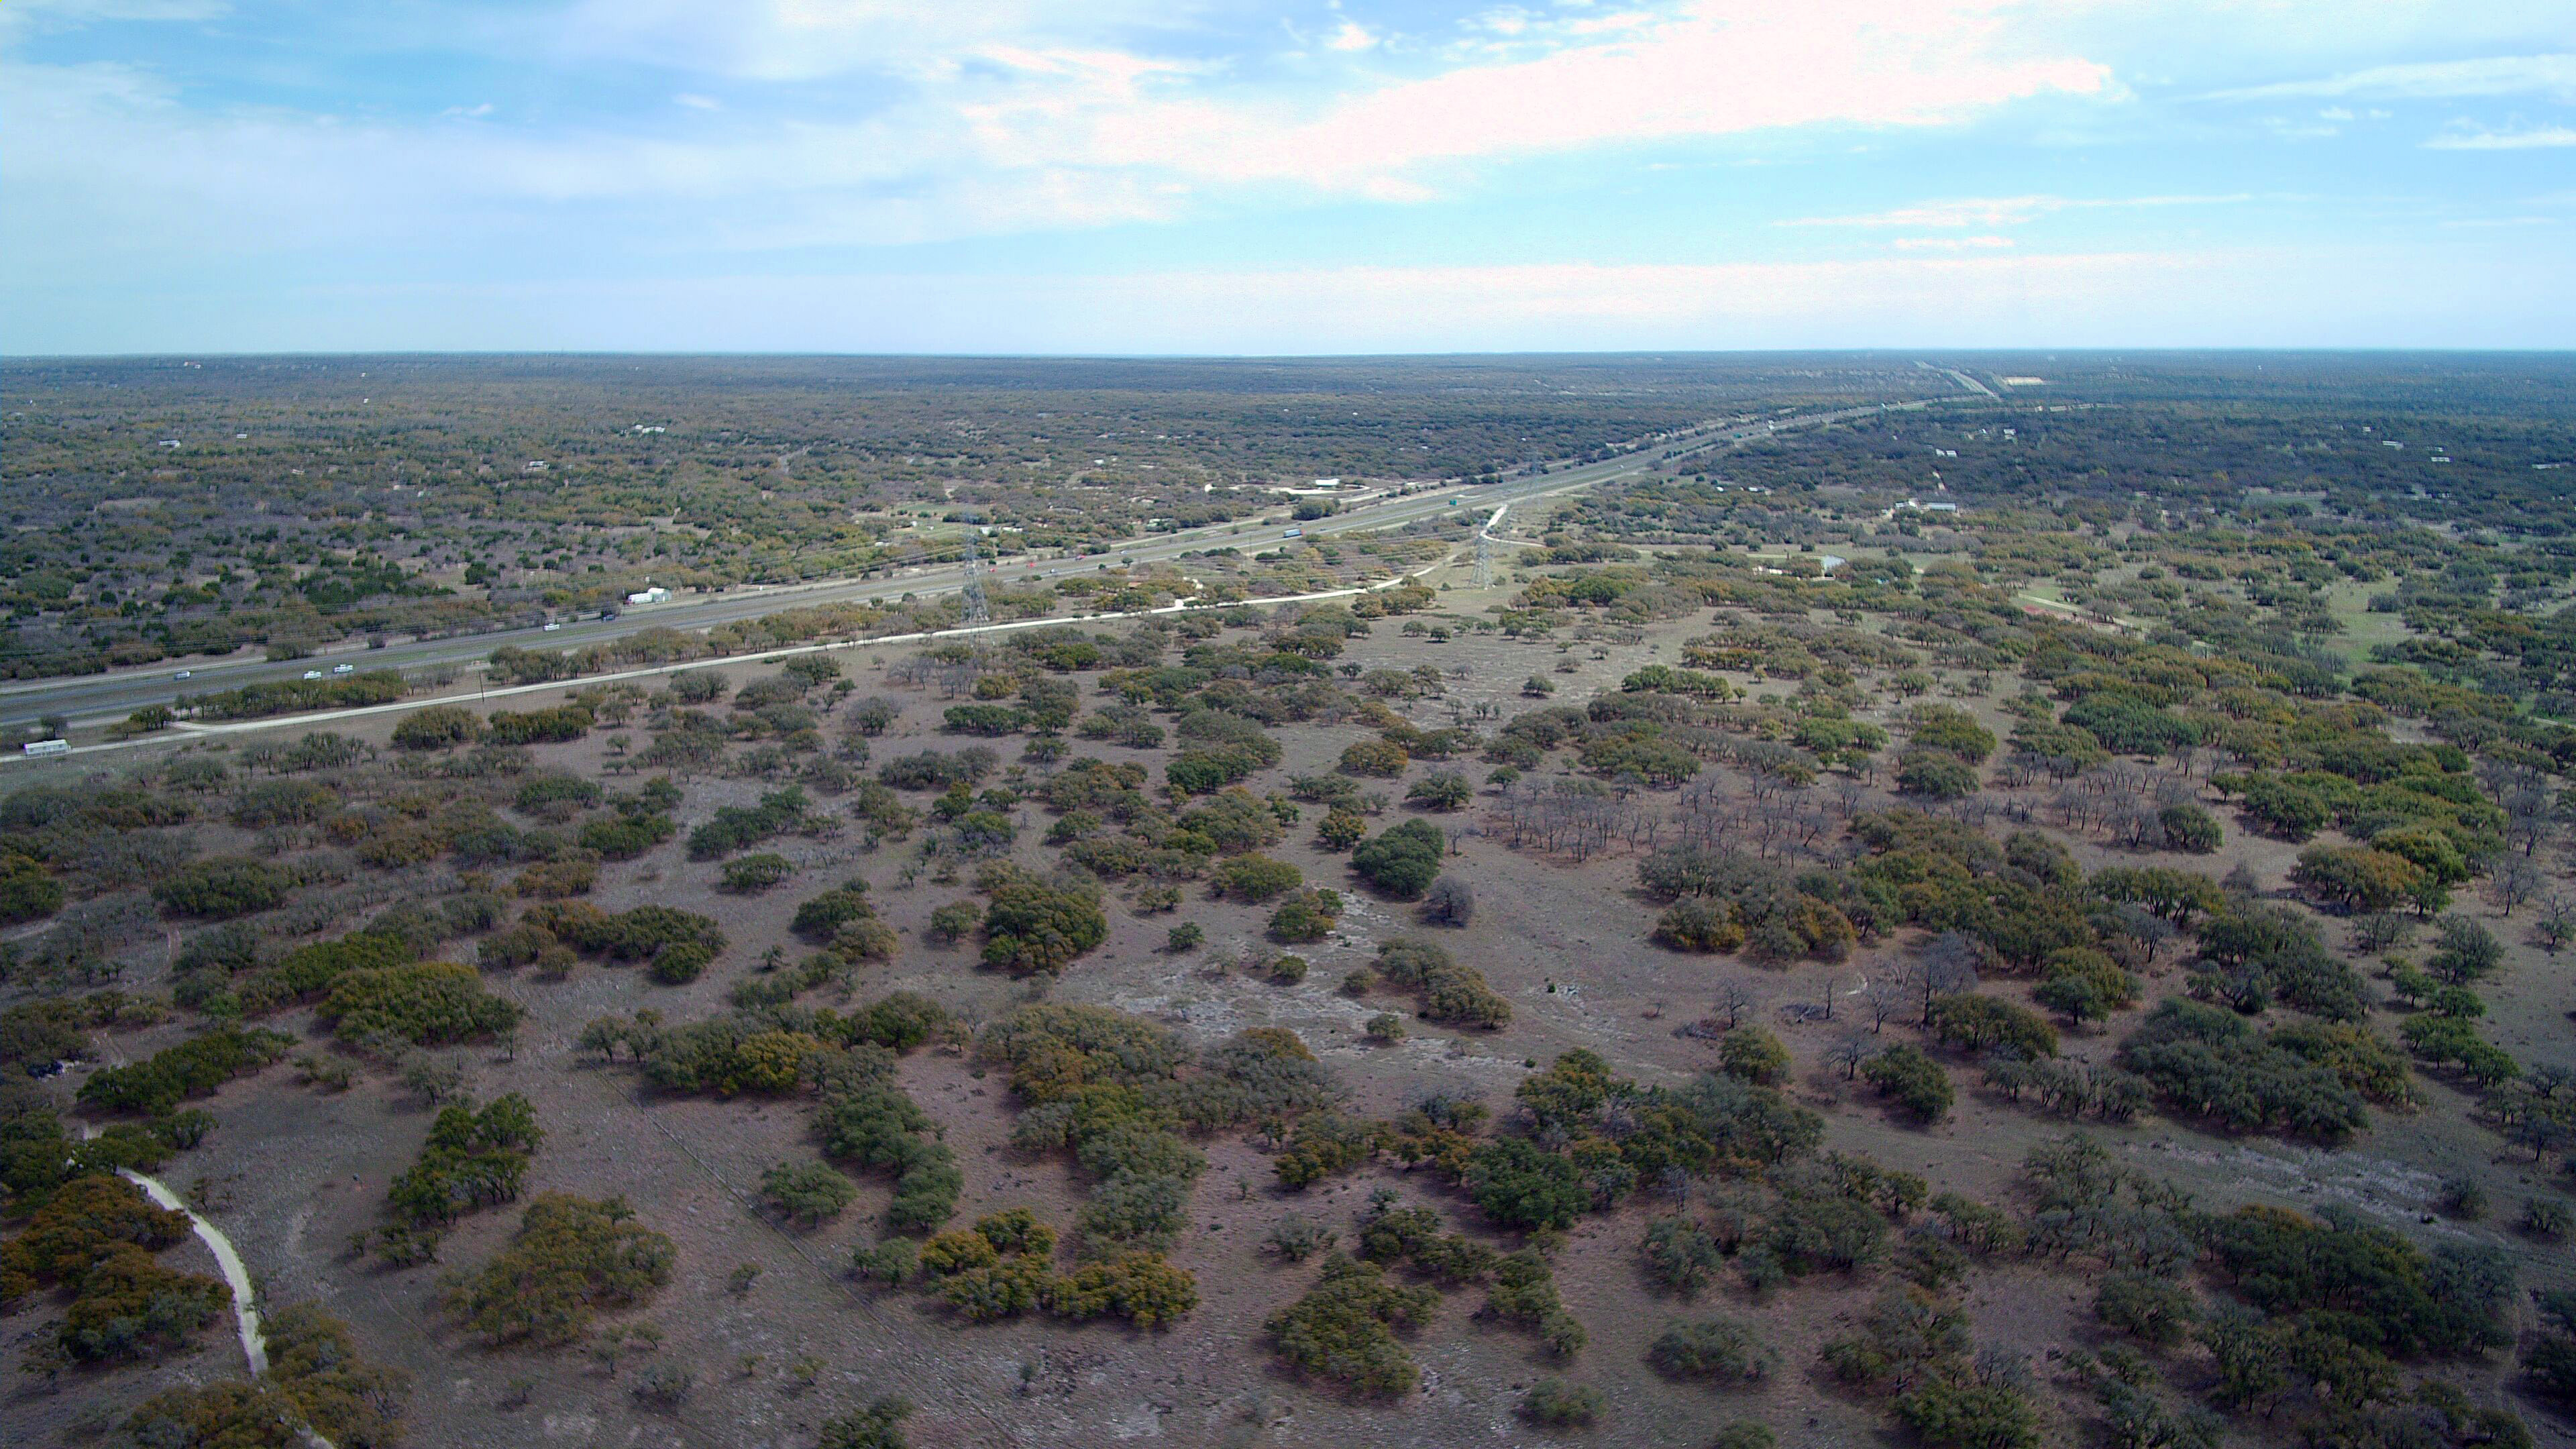 Drone Services Leakey Texas